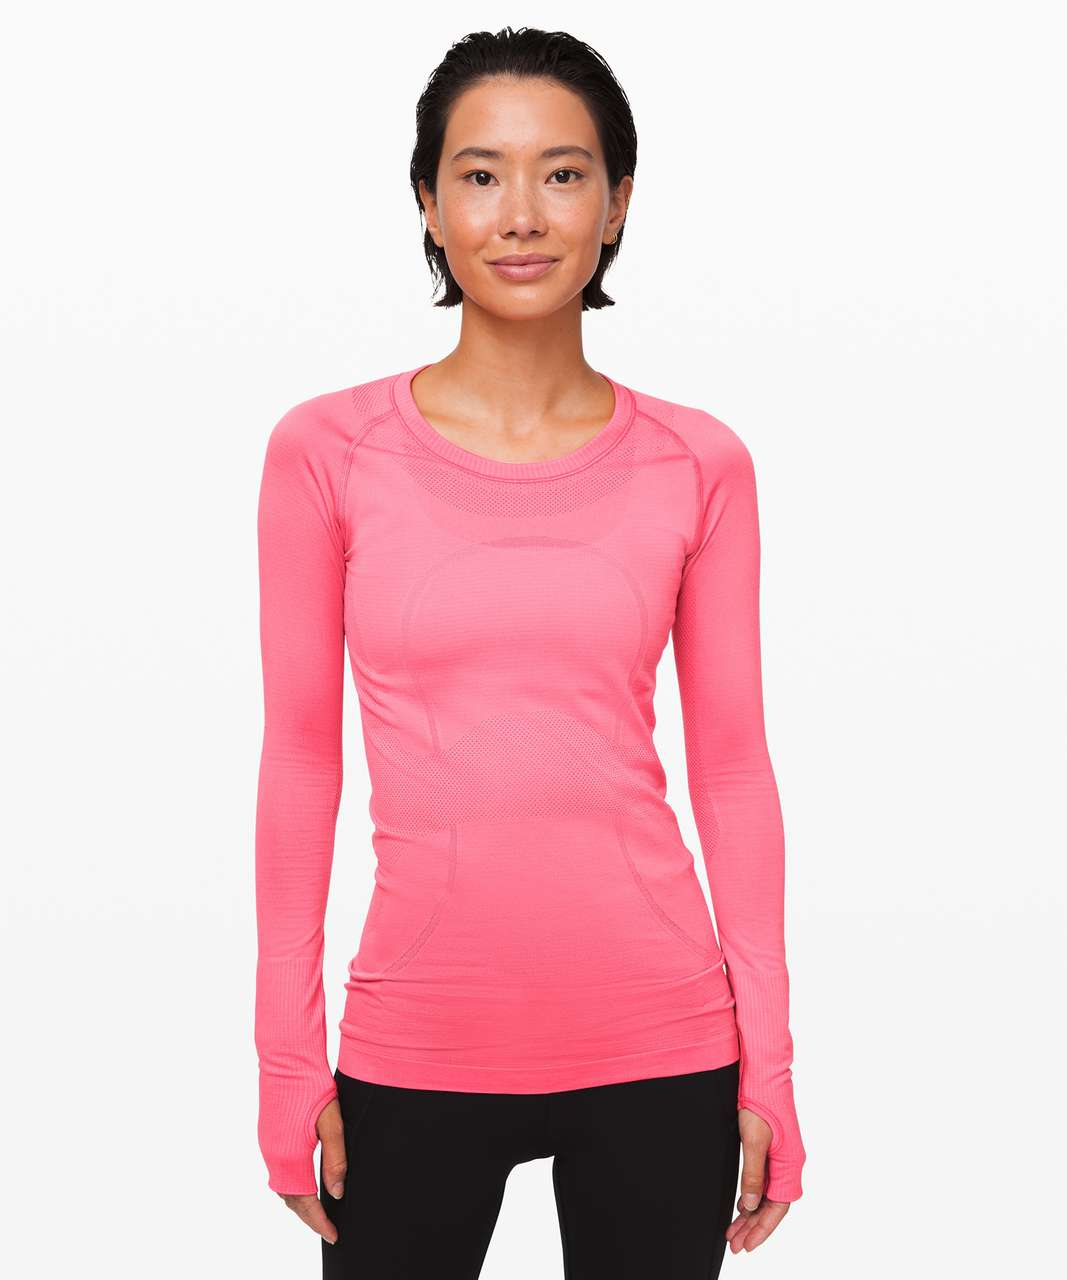 Lululemon Swiftly Tech Long Sleeve Crew - Heartthrob / Heartthrob